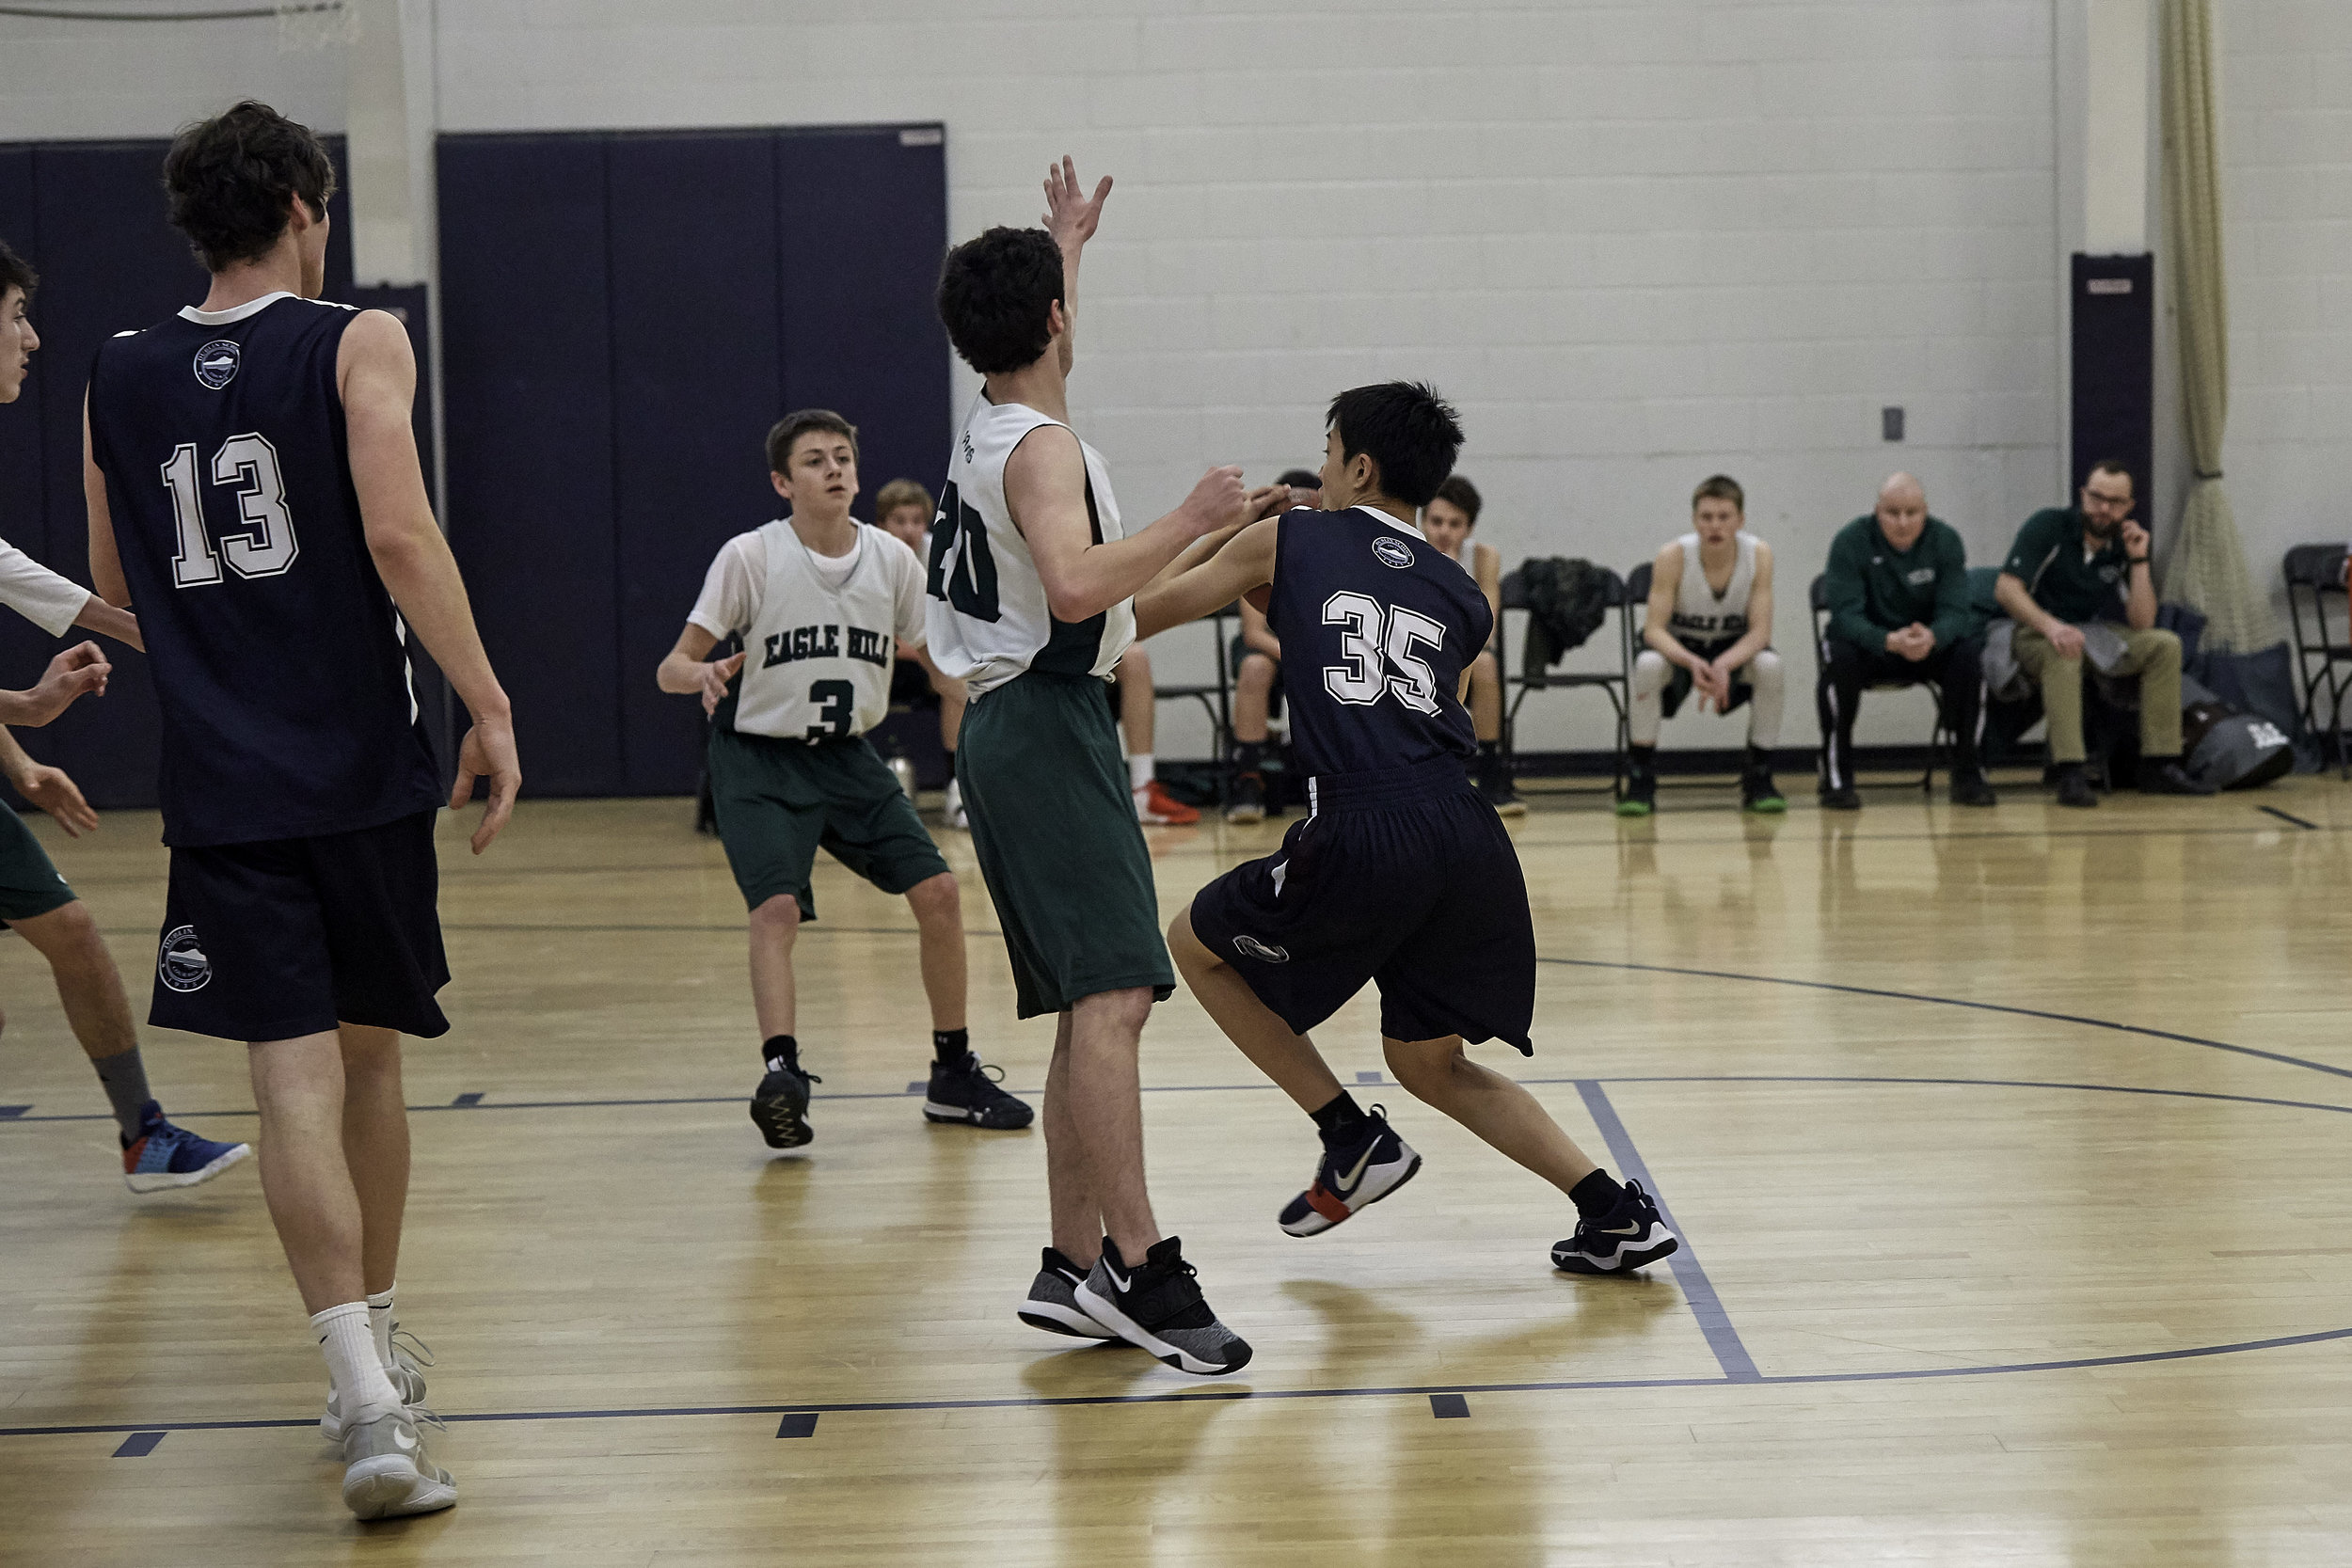 Boys Varsity Basketball vs. Eagle Hill School JV at RVAL Tournament - February 11, 2019 - 167713.jpg